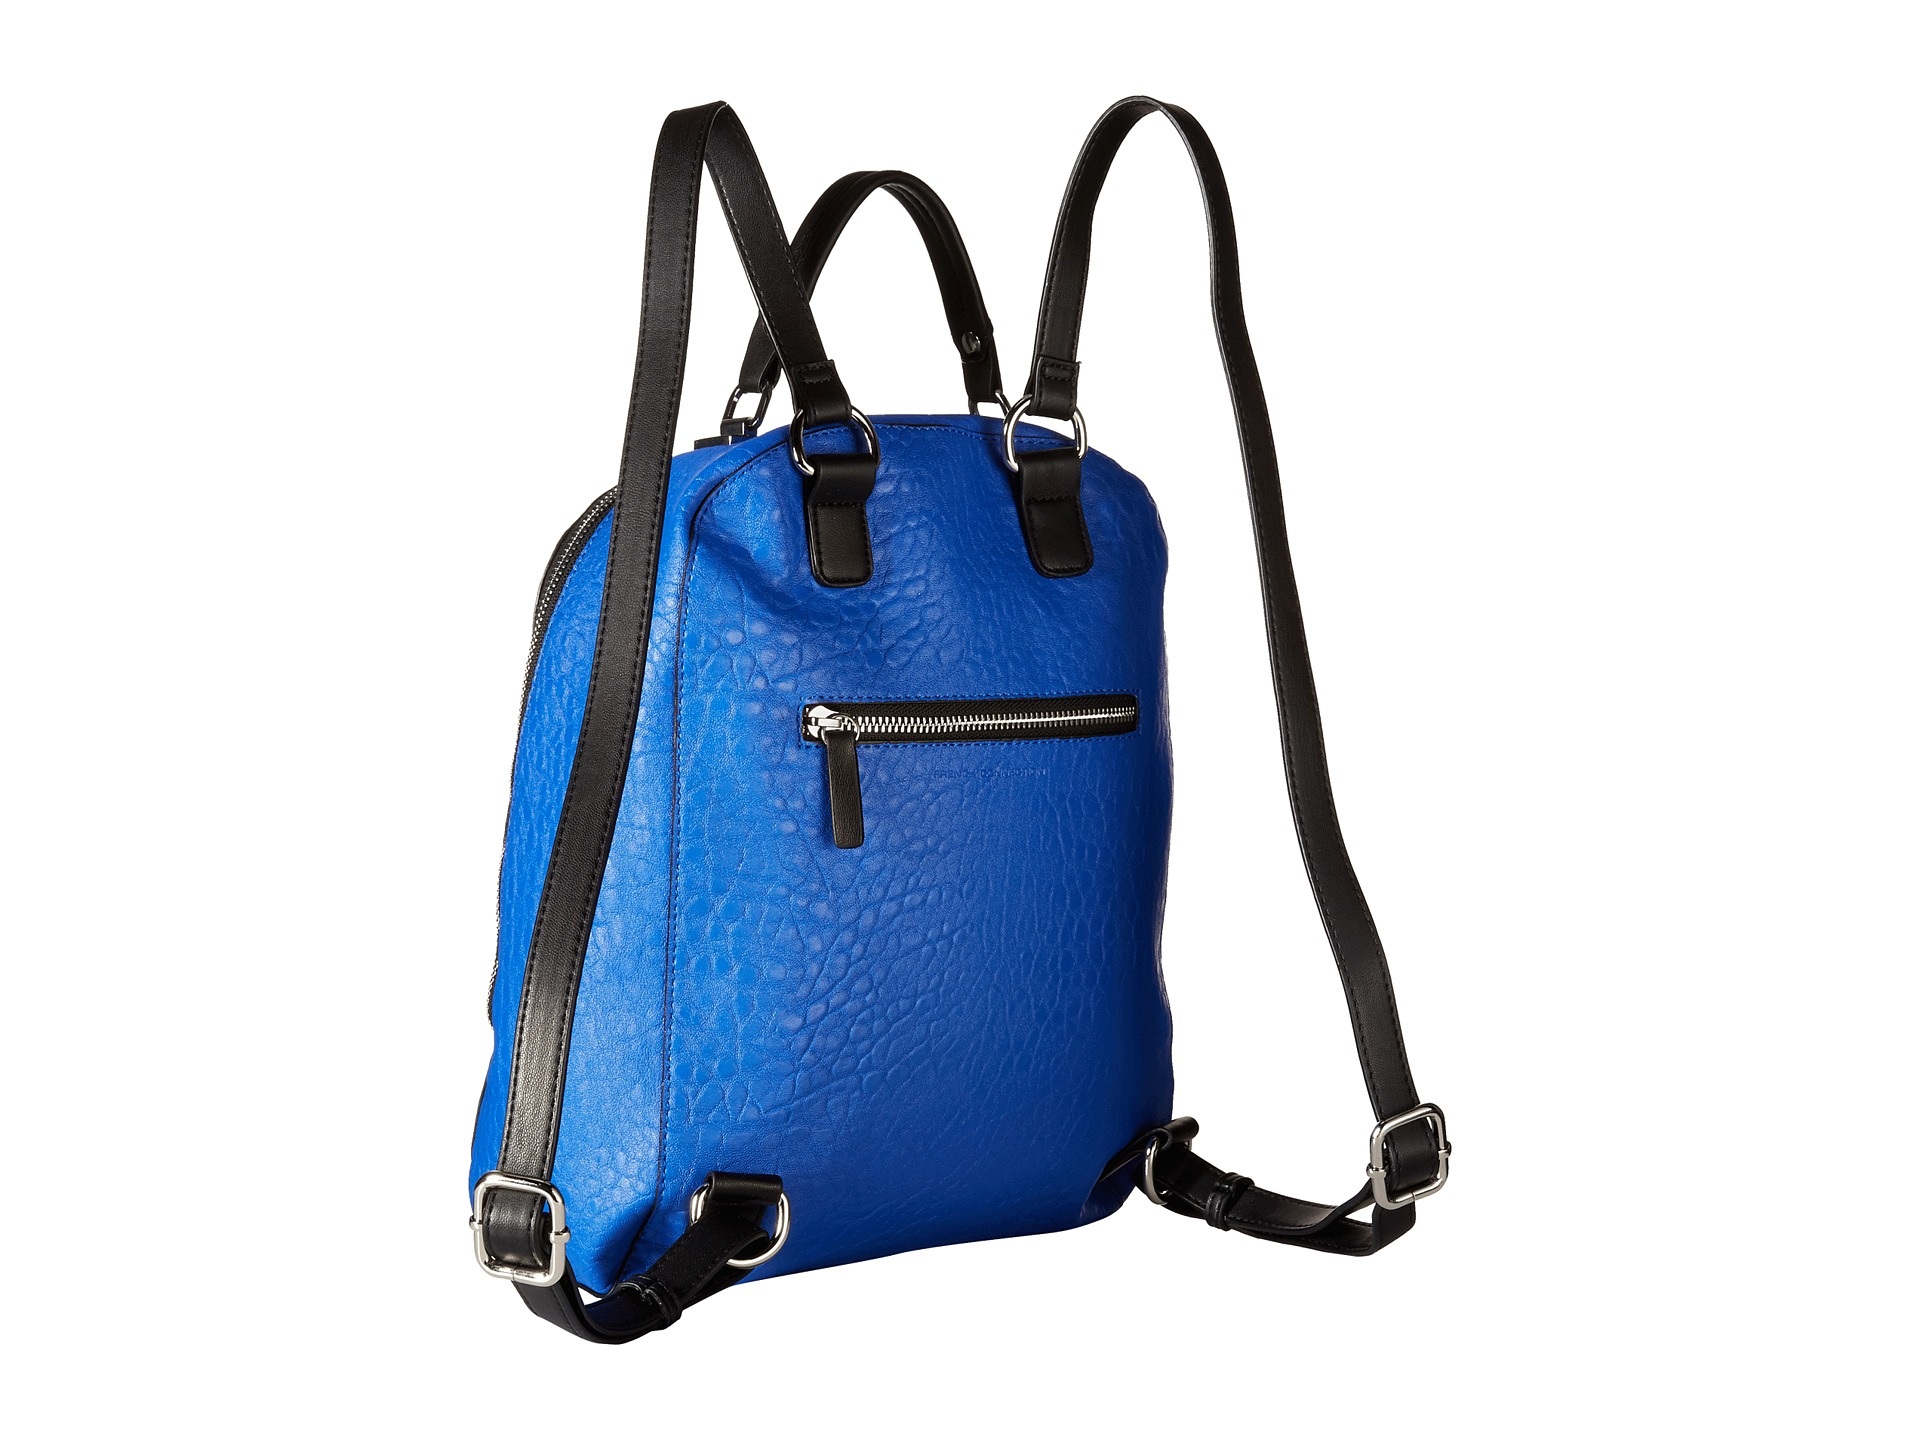 Https Bags French Connection Lennon Backpack Empire Allegra Maroon Army Diaper 8745506 Blue Ca0a3f42 Jpeg